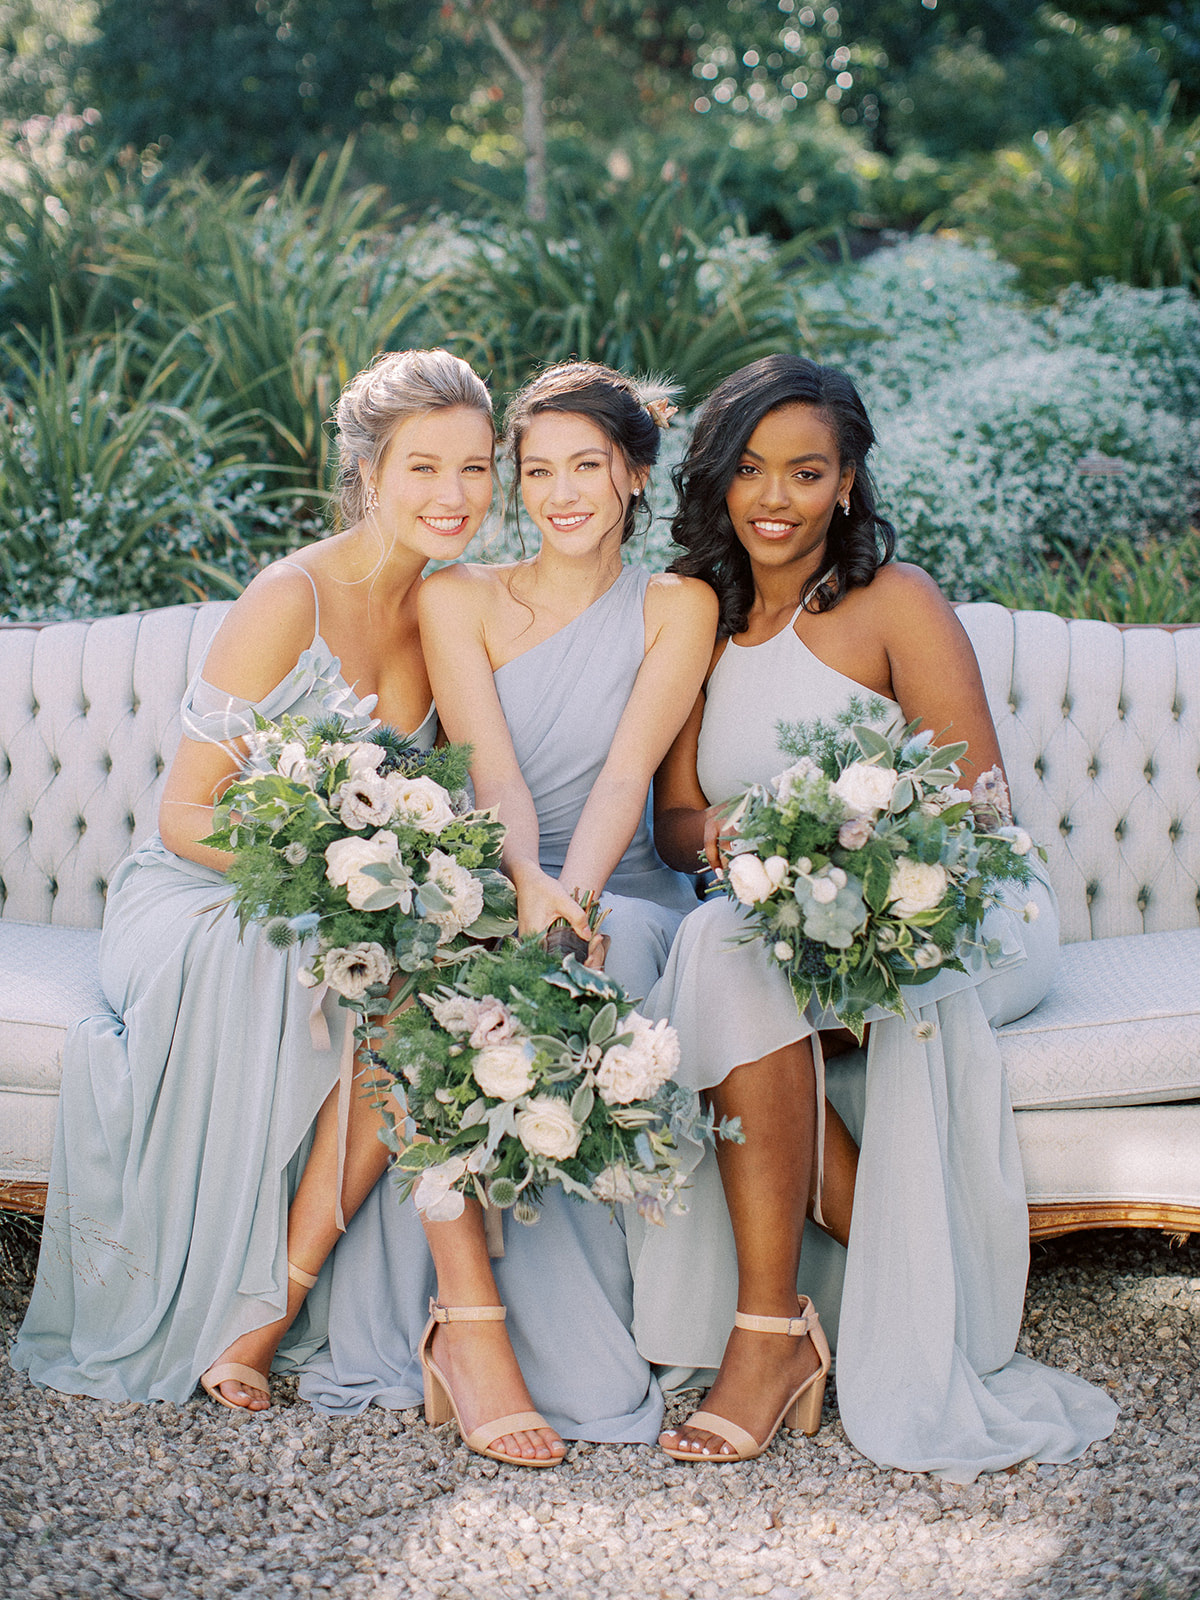 Group of bridesmaids sitting down and posing for a photo wearing dresses in the color Dusty Blue for the Winter season.